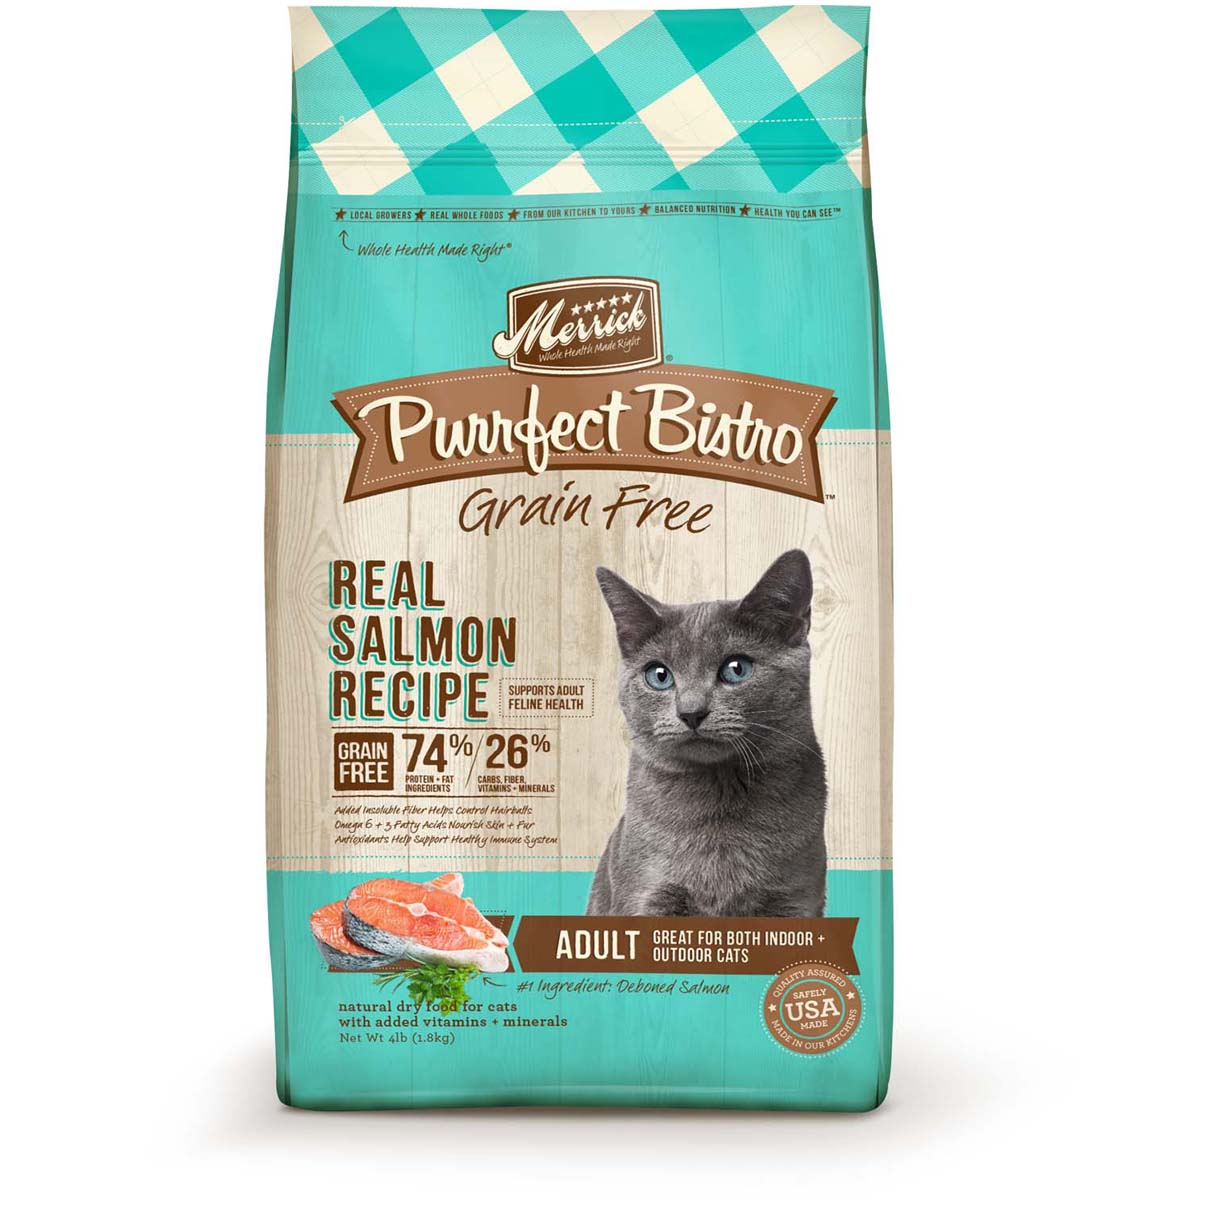 Merrick Purrfect Bistro Grain-Free Real Salmon Recipe Adult Dry Cat Food 4lbs